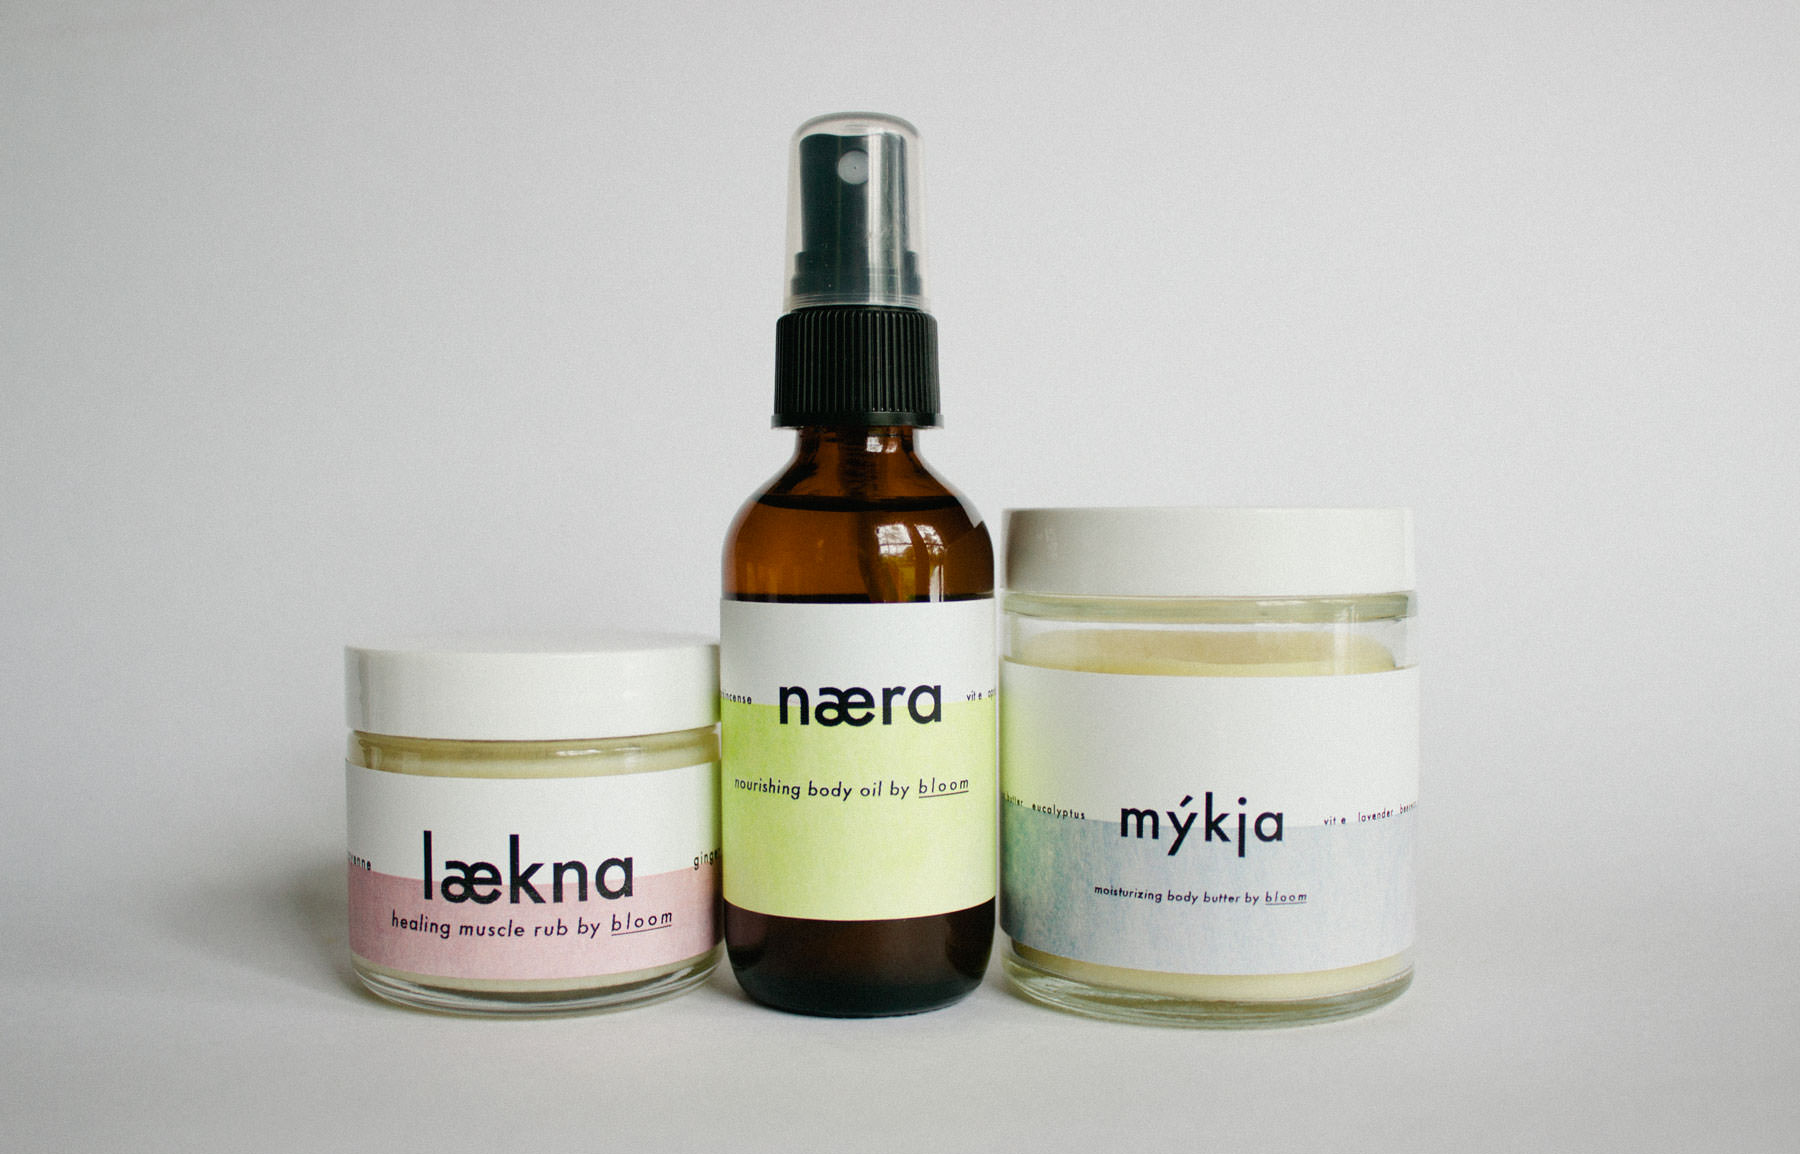 Instantly nourish and restoreyour skin while simulatenously giving your nosea legitmate reason to yourself every five seconds:  laekna healing muscle rub  infuses achy joints with, natural anti-inflammatories like ginger and peppermint;  naera nourishing body oil   is addictivly warm and soft with extracts from bergamot and frankensince to encouragehealthy cell regrowth;   myjka mositurzing body butter   locks in moisture and awakens skin grapefruit and eucalyptus